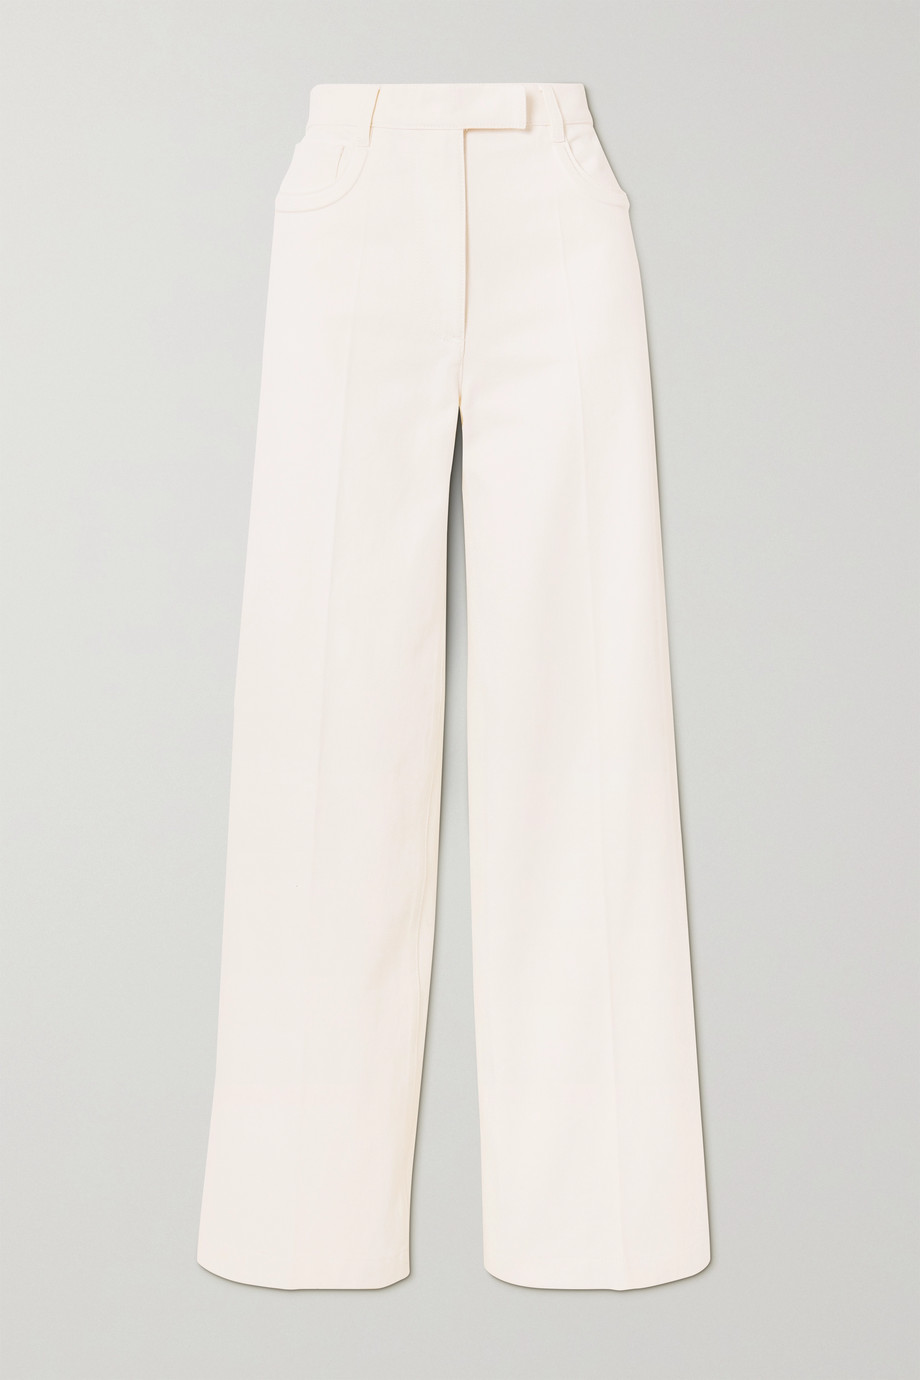 Embossed denim wide-leg pants by Fendi, available on net-a-porter.com for EUR720 Georgia Fowler Pants Exact Product